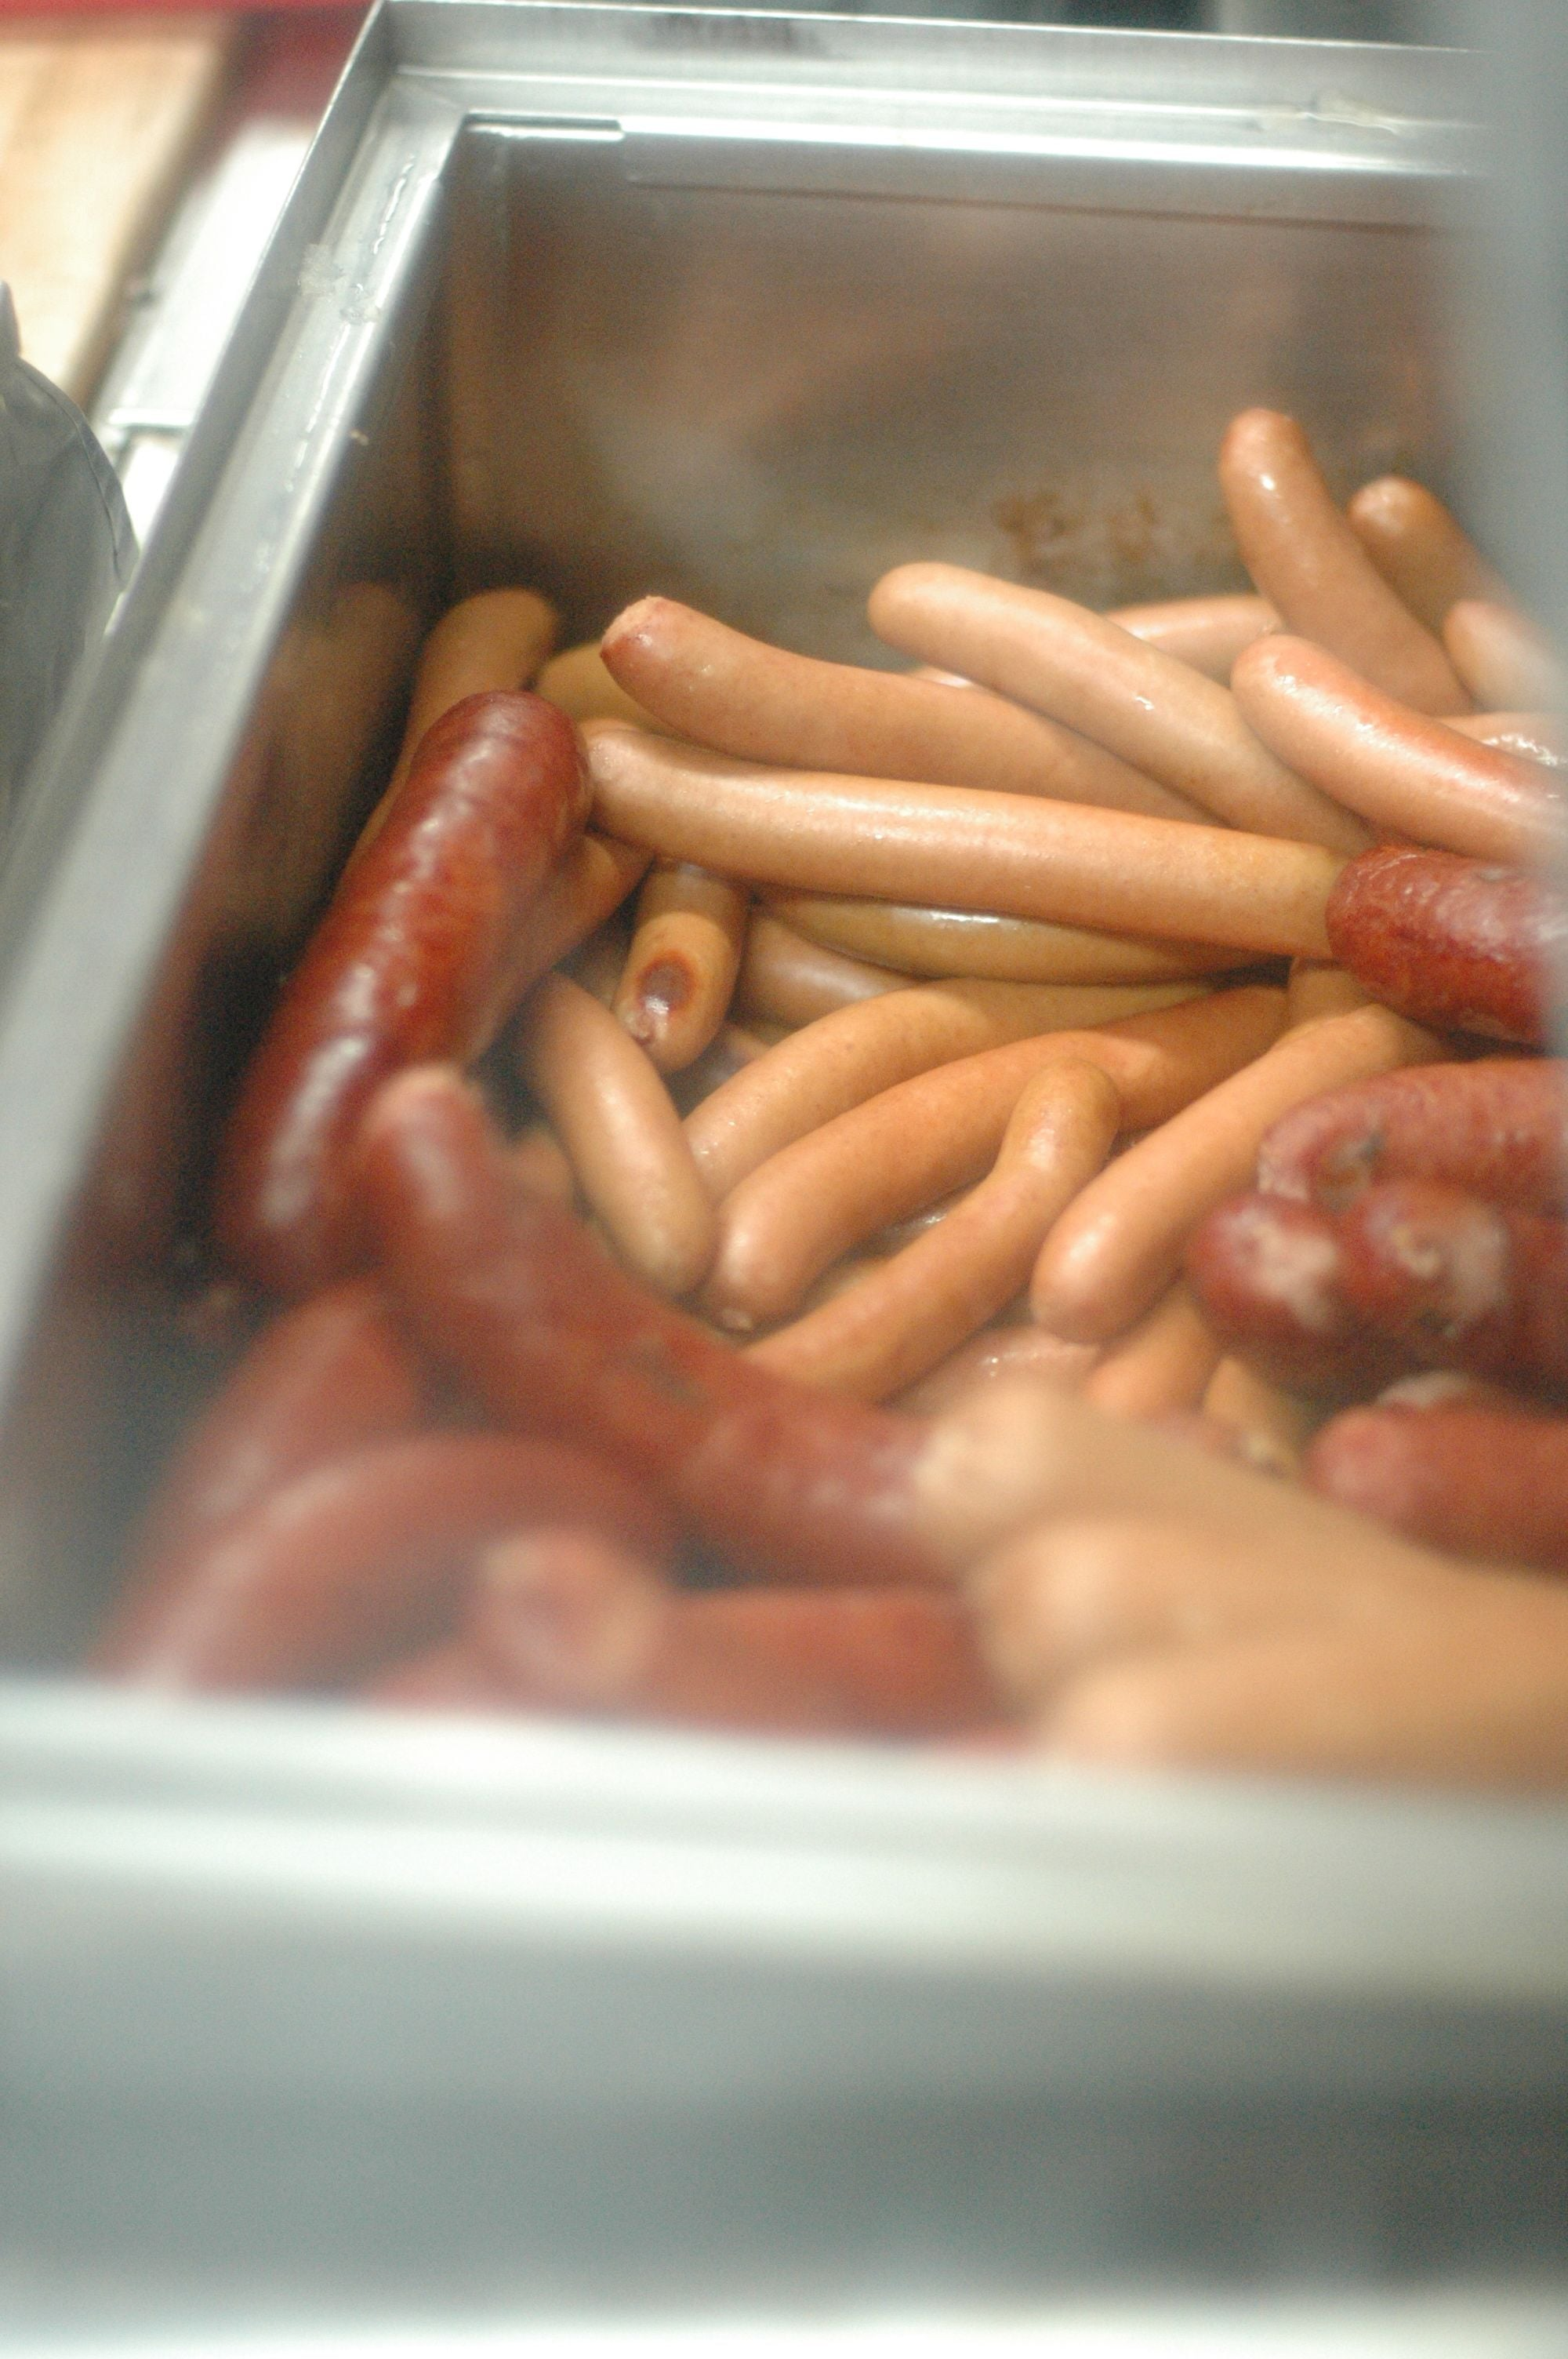 These hot dogs and sausages are waiting for you to order them.